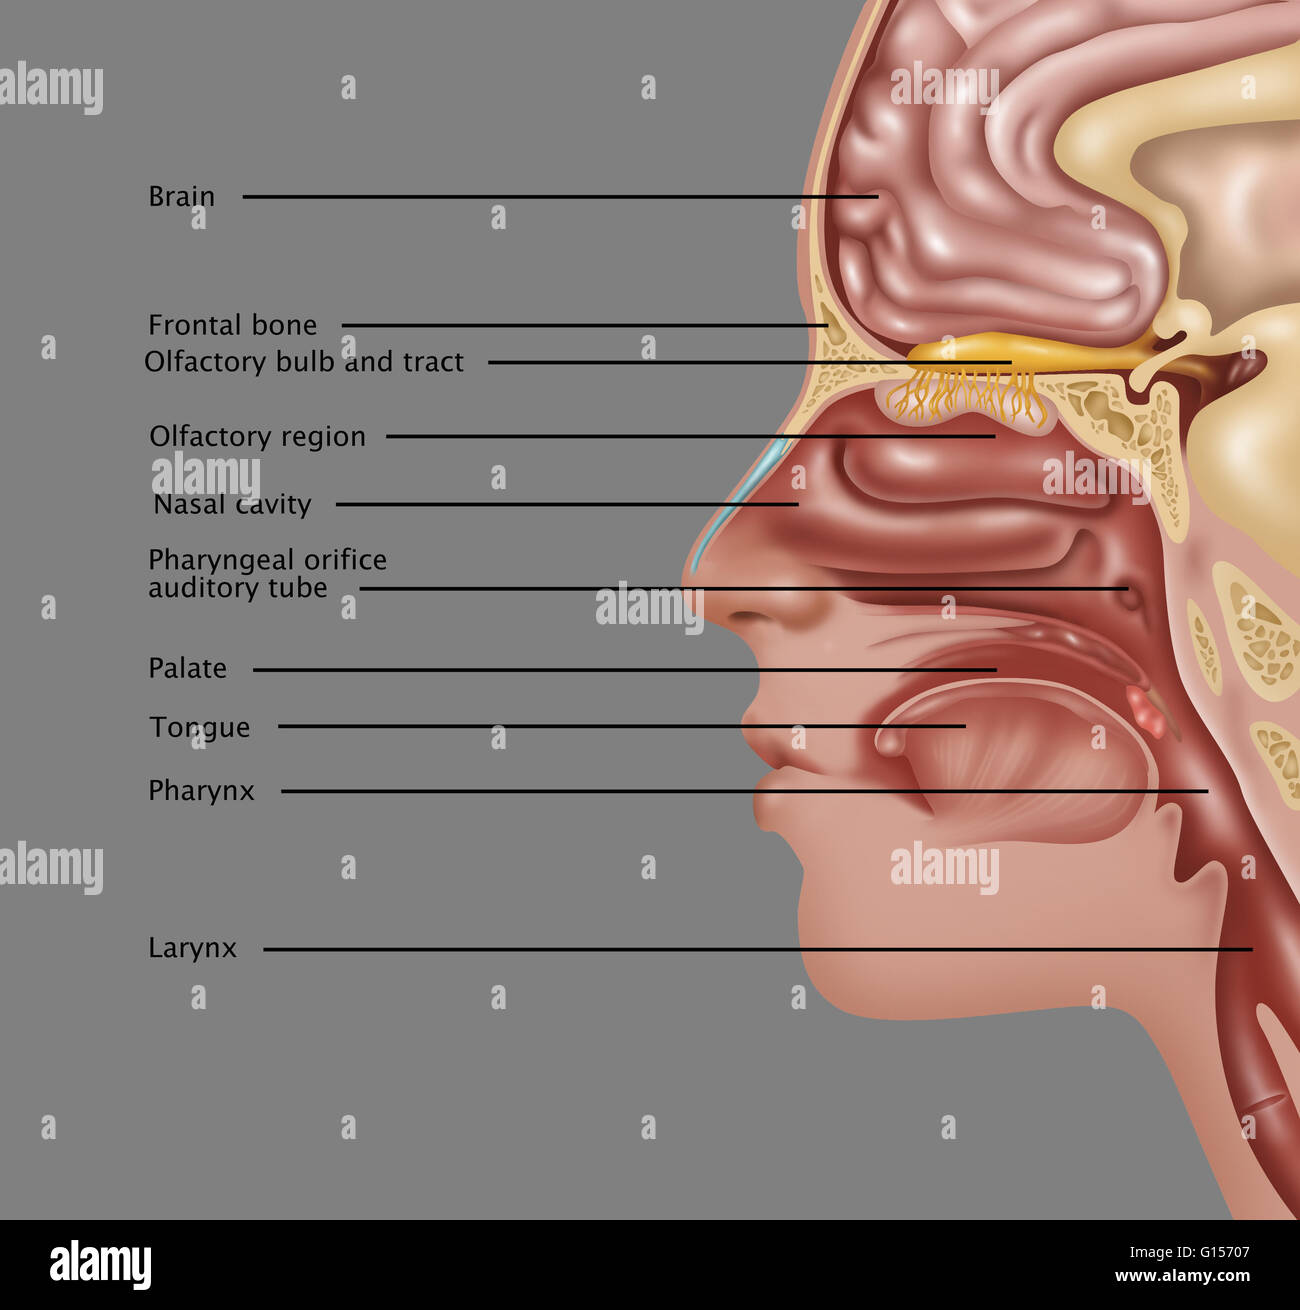 Illustration of the anatomy used in the sense of smell. The ...